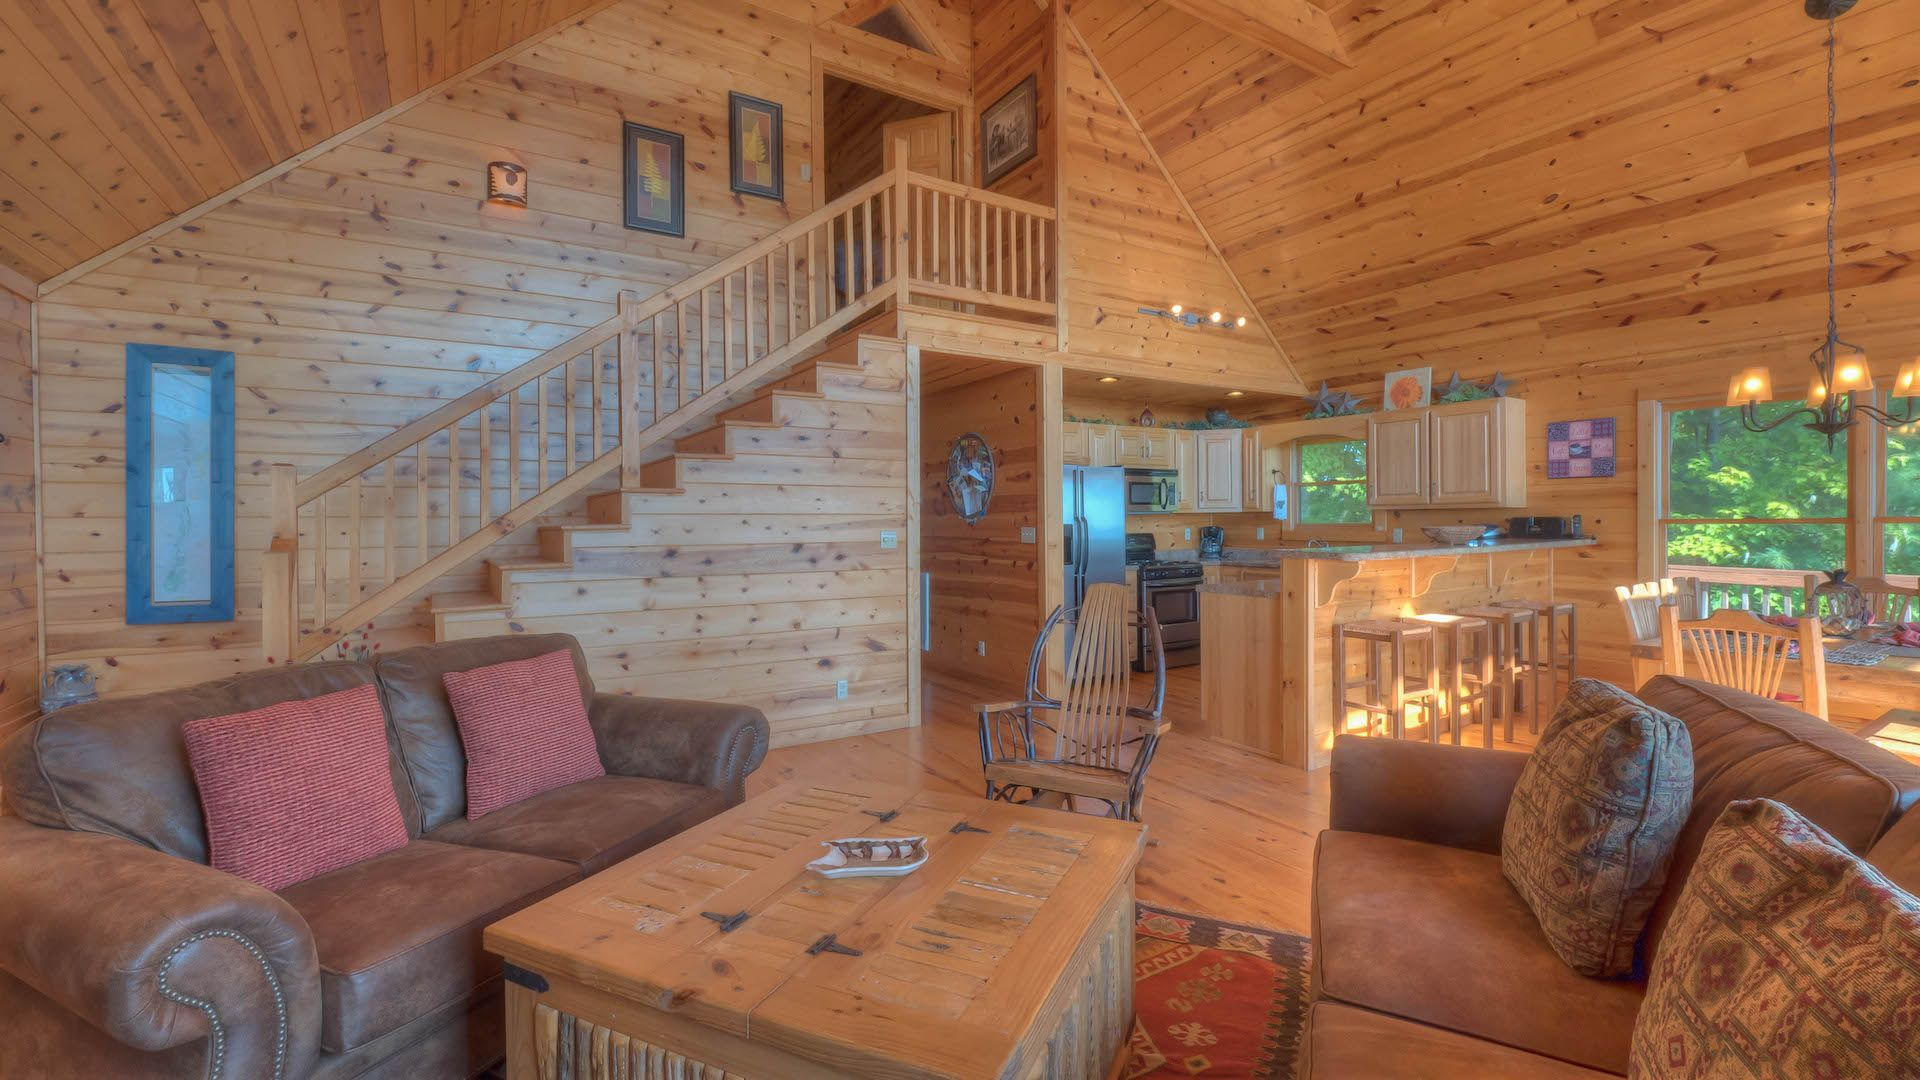 dreams chasing cabins pin rentals cabin pinterest ga ar house blue in rental ridge georgia